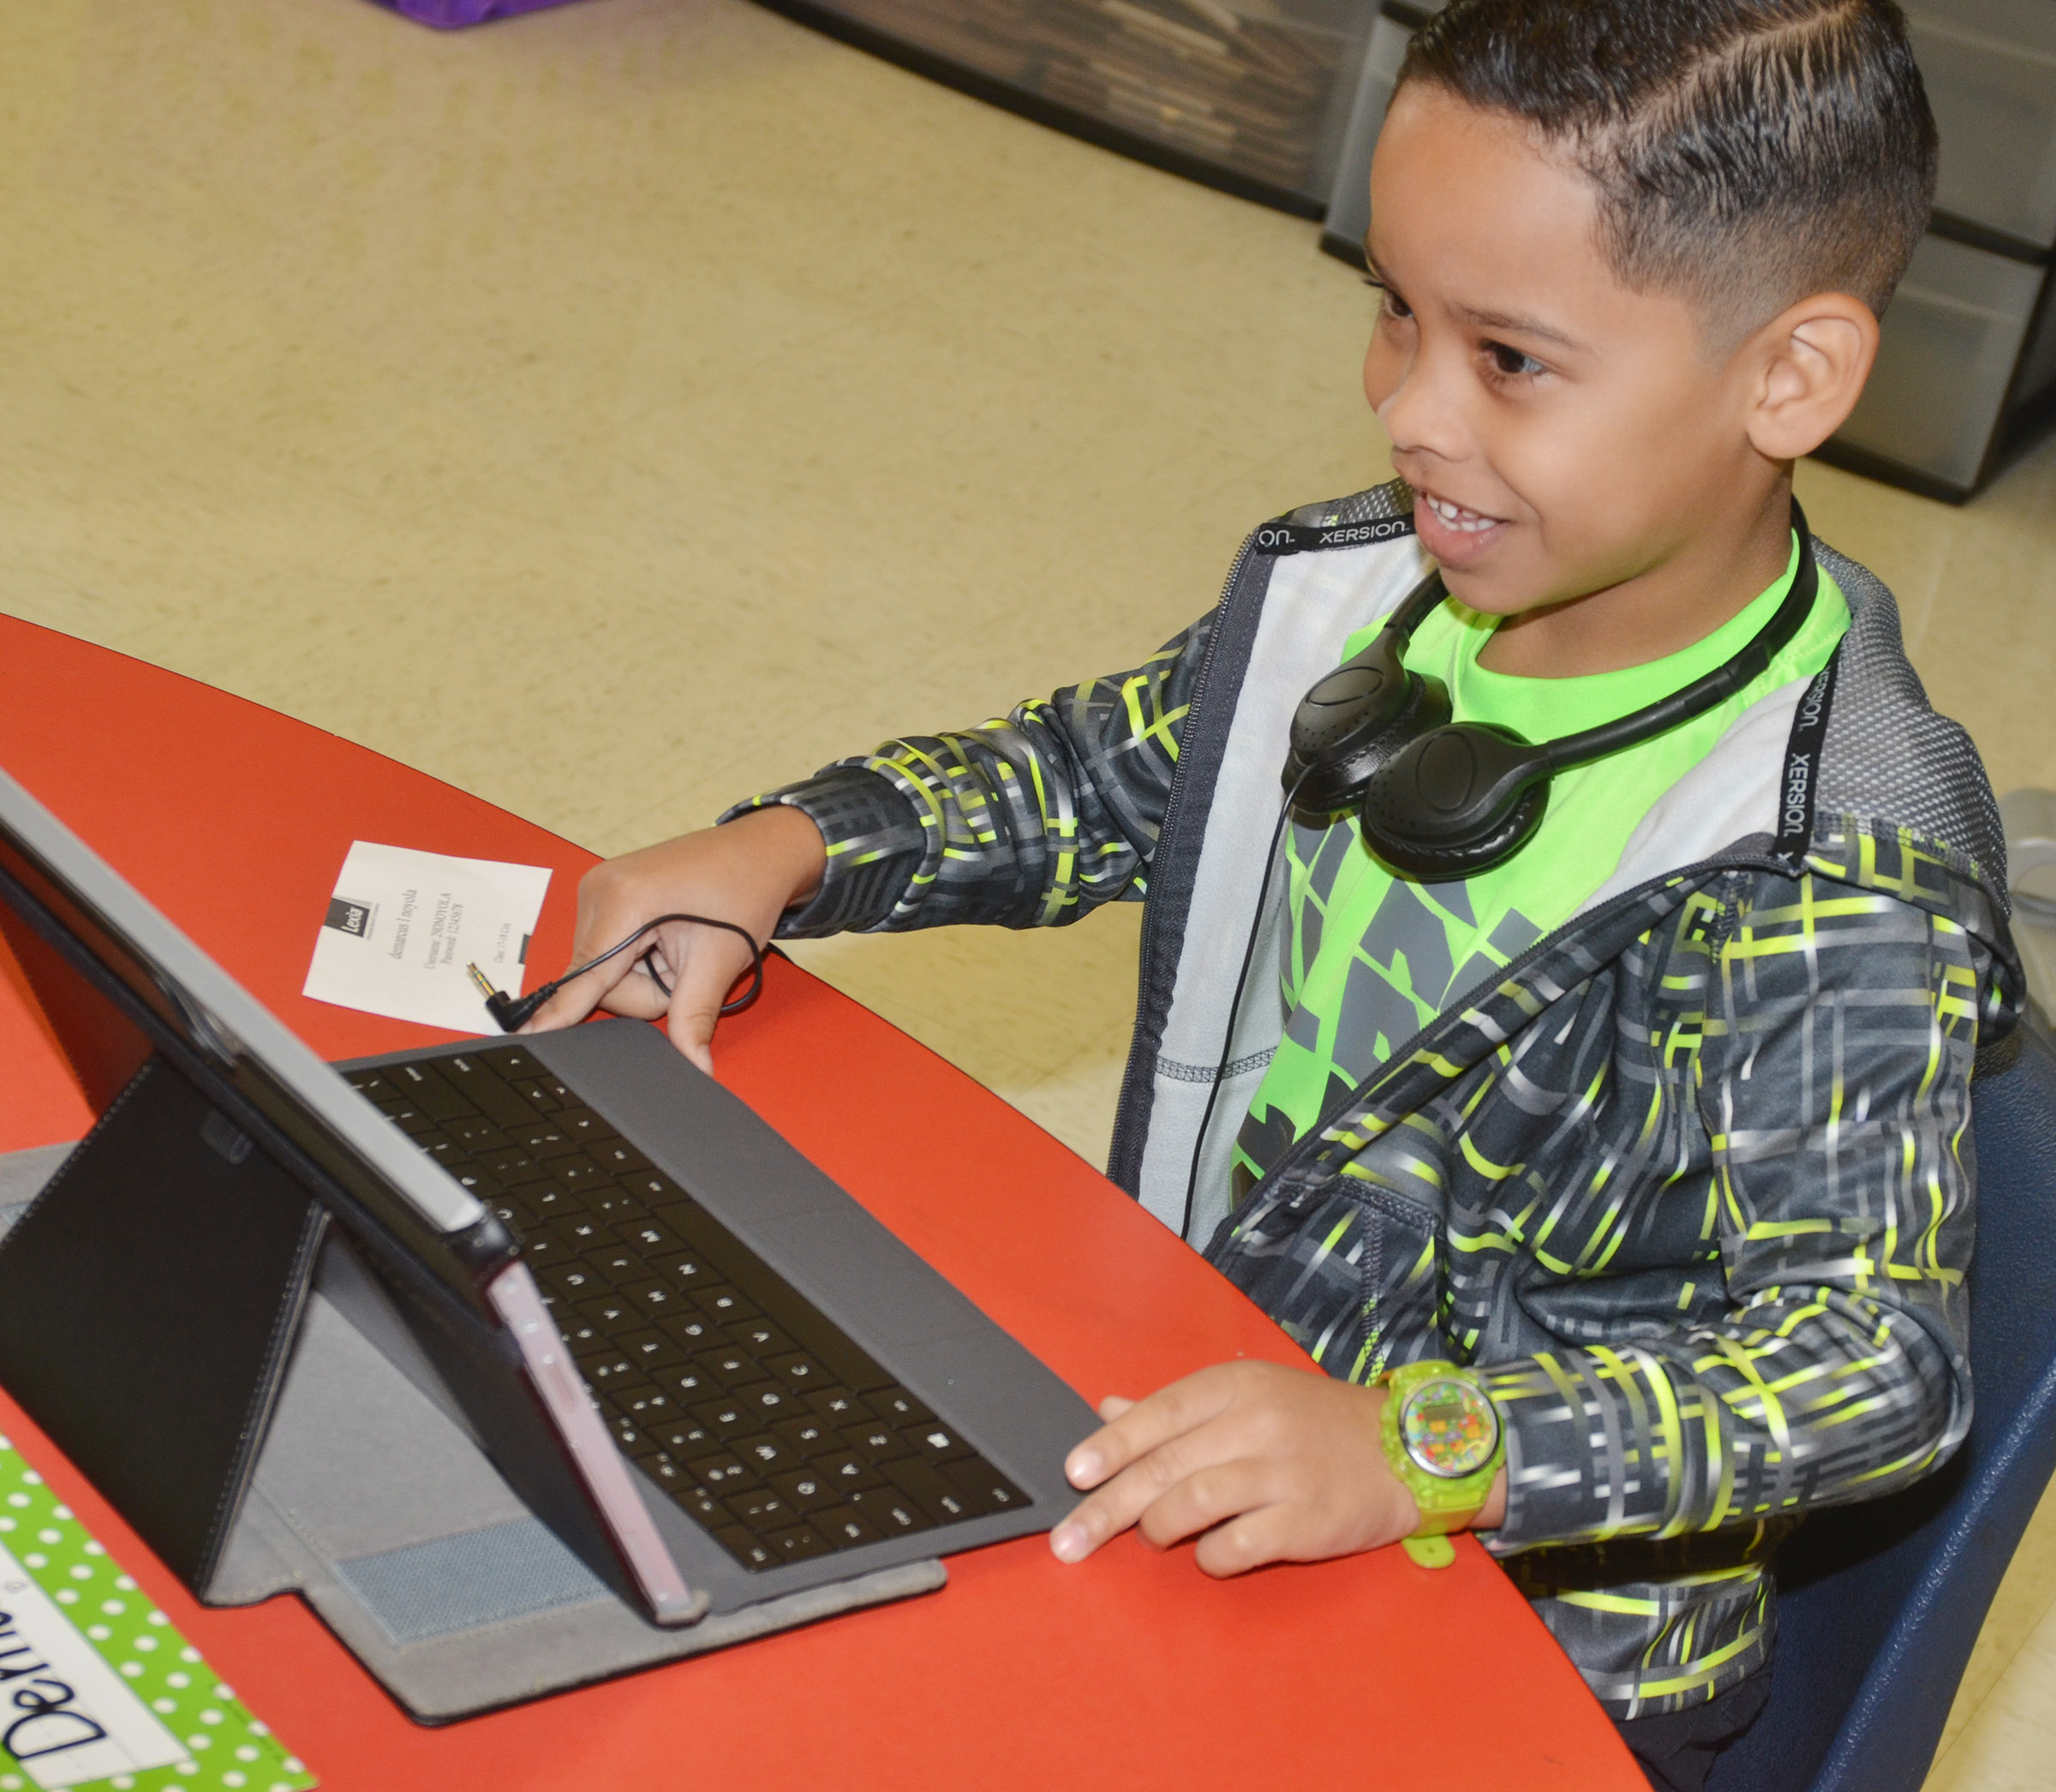 CES first-grader Demarcus Noyola smiles as he turns on his tablet.